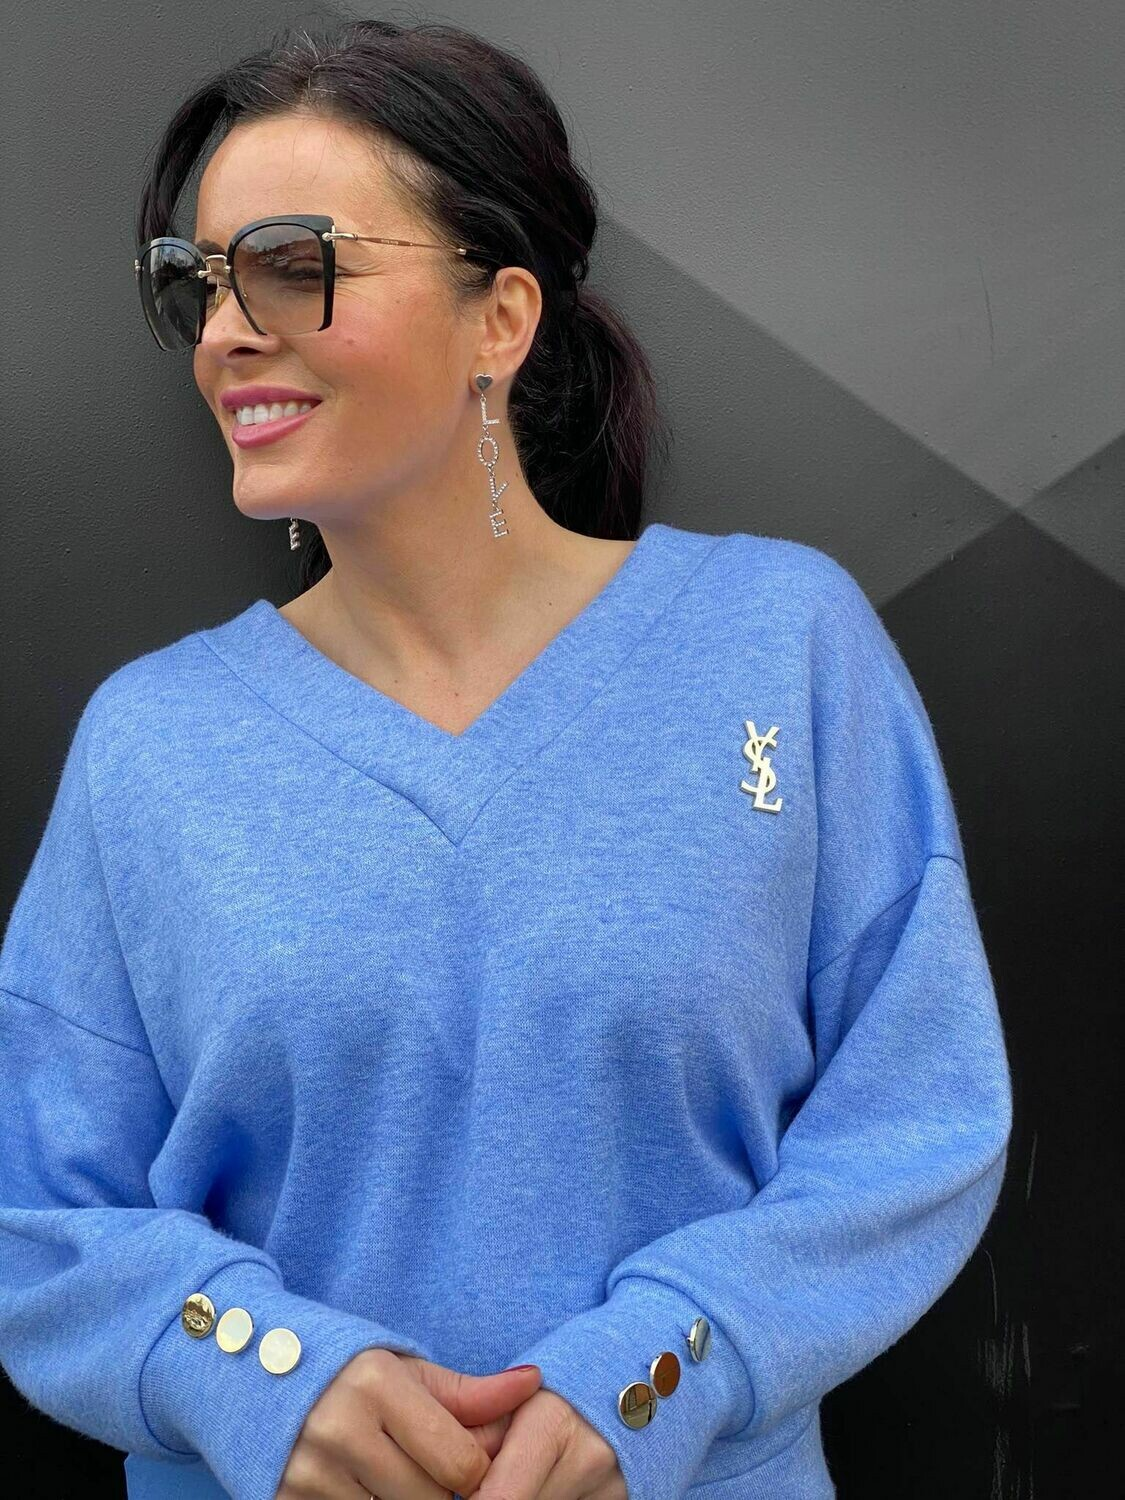 'A Touch of YSL' Soft V-neck Top in Blue